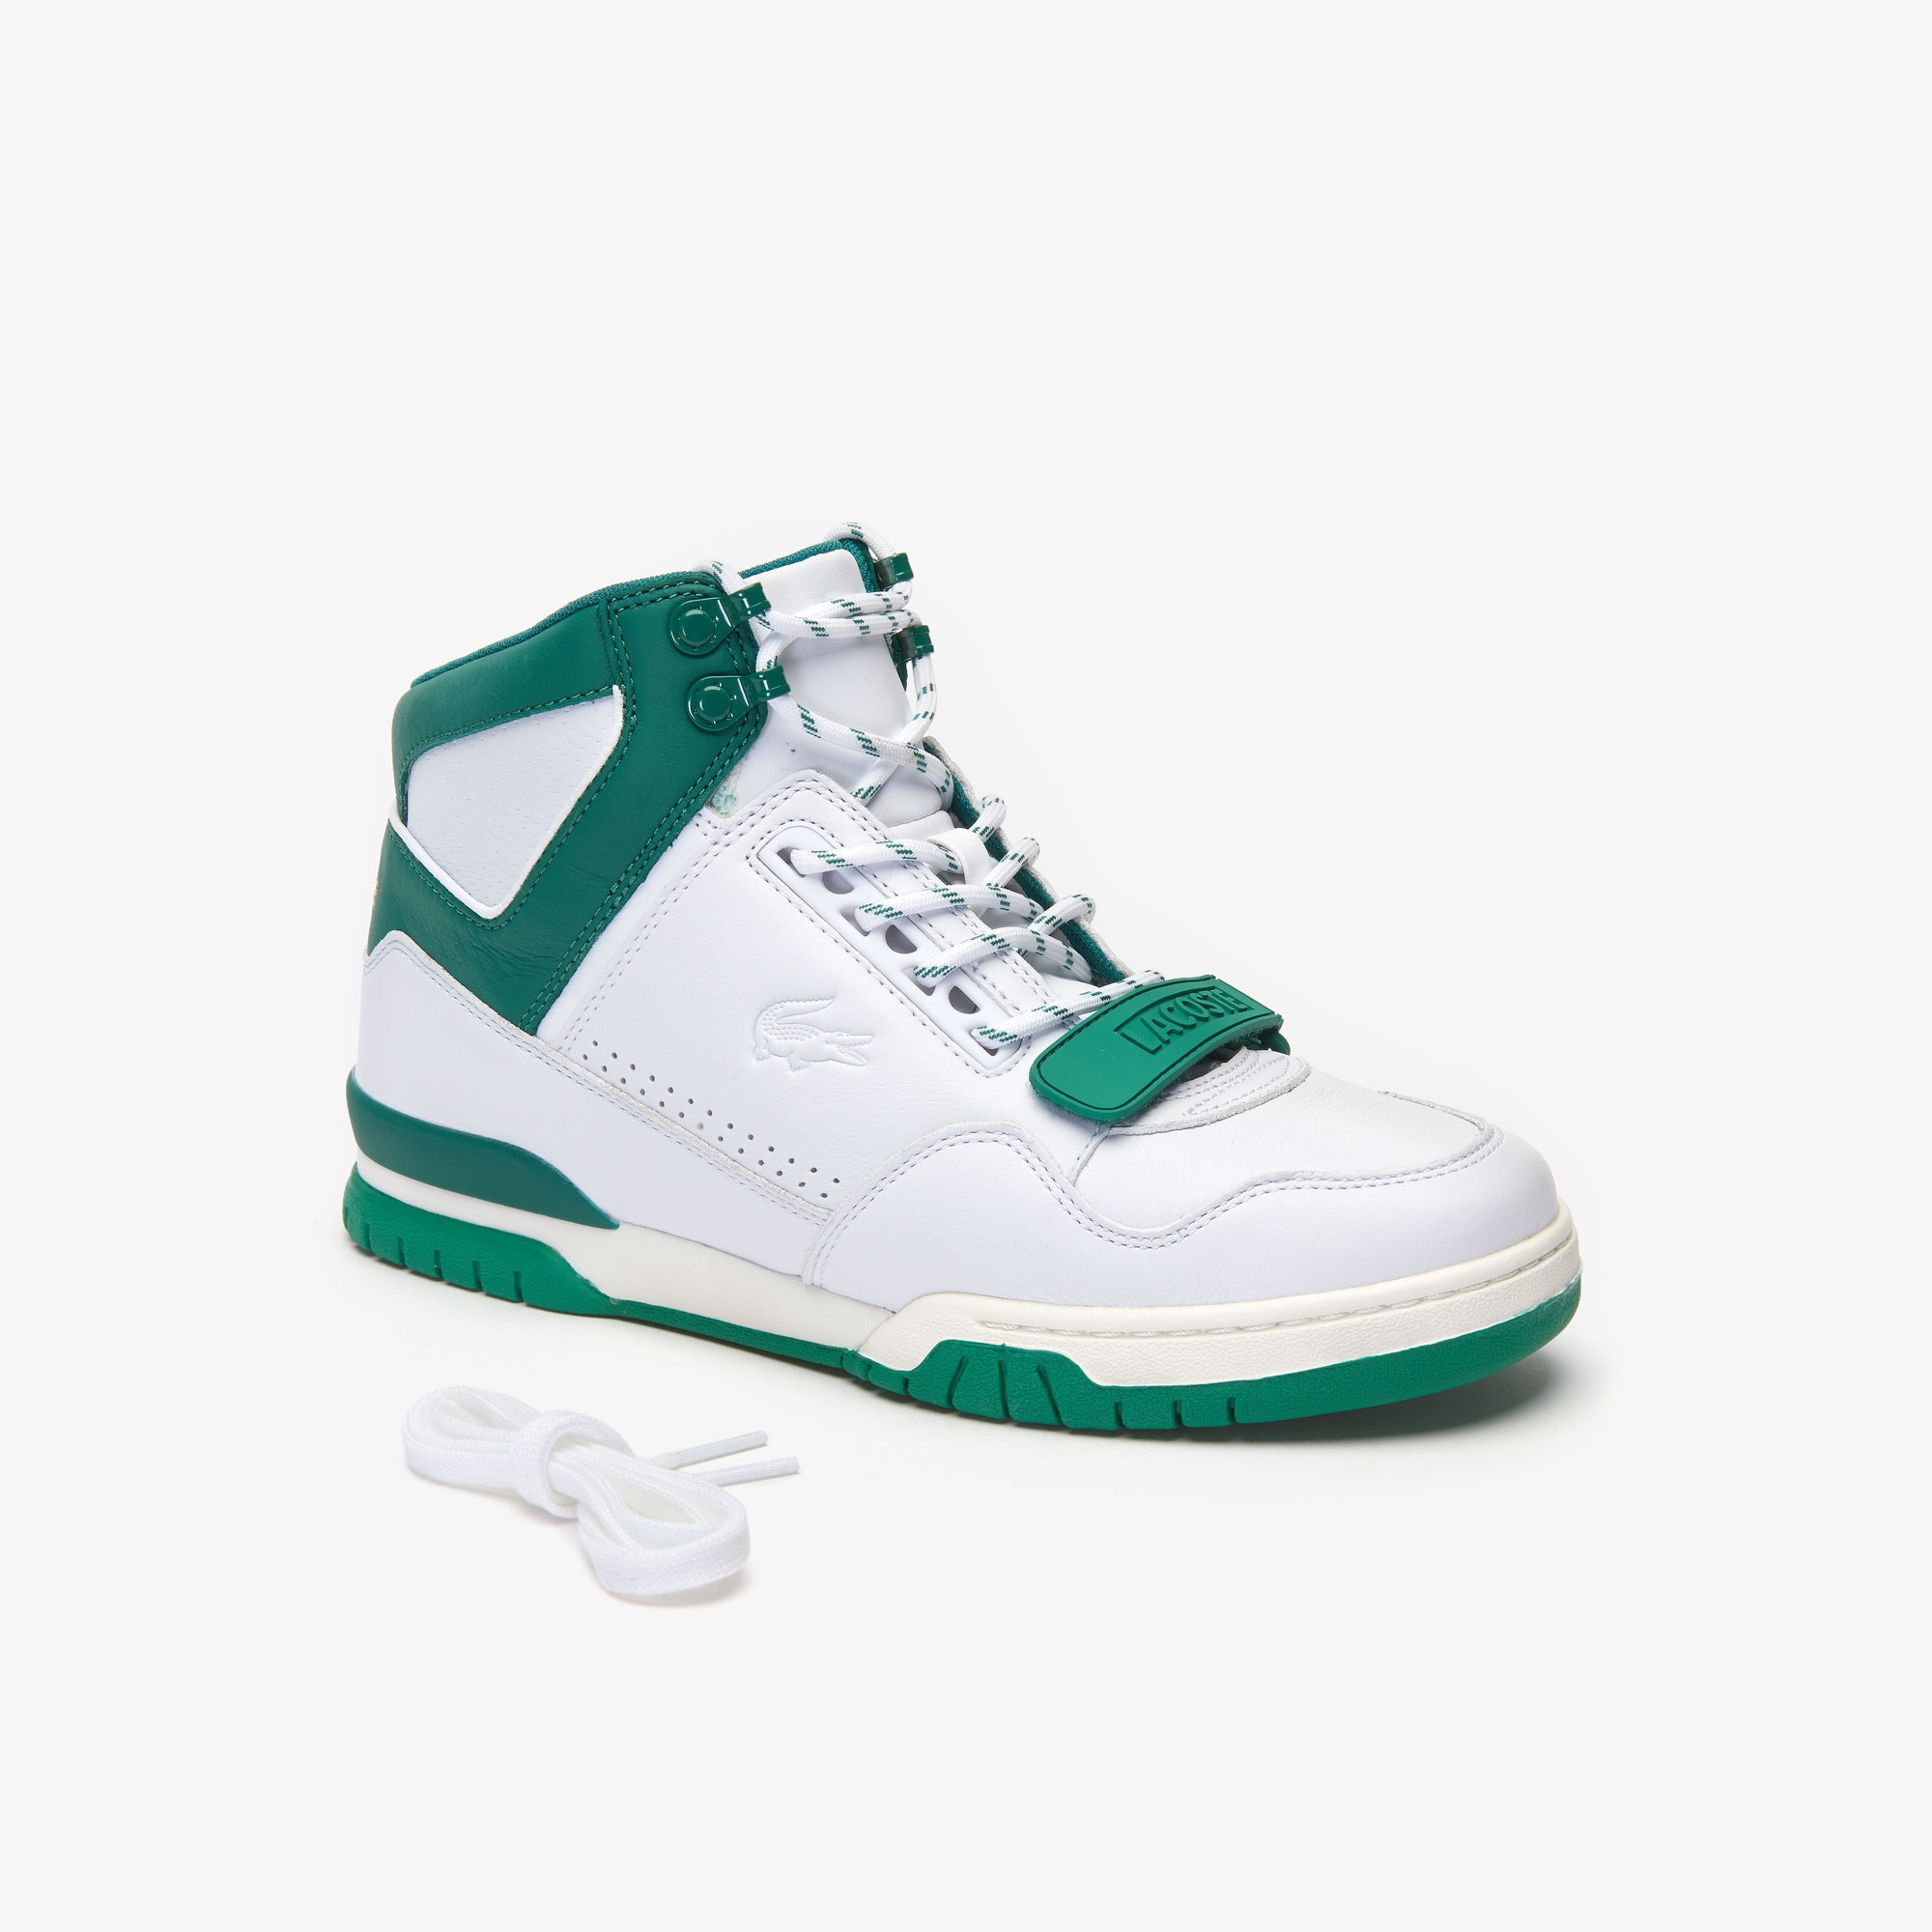 Men's Missouri Leather High-Top Sneakers